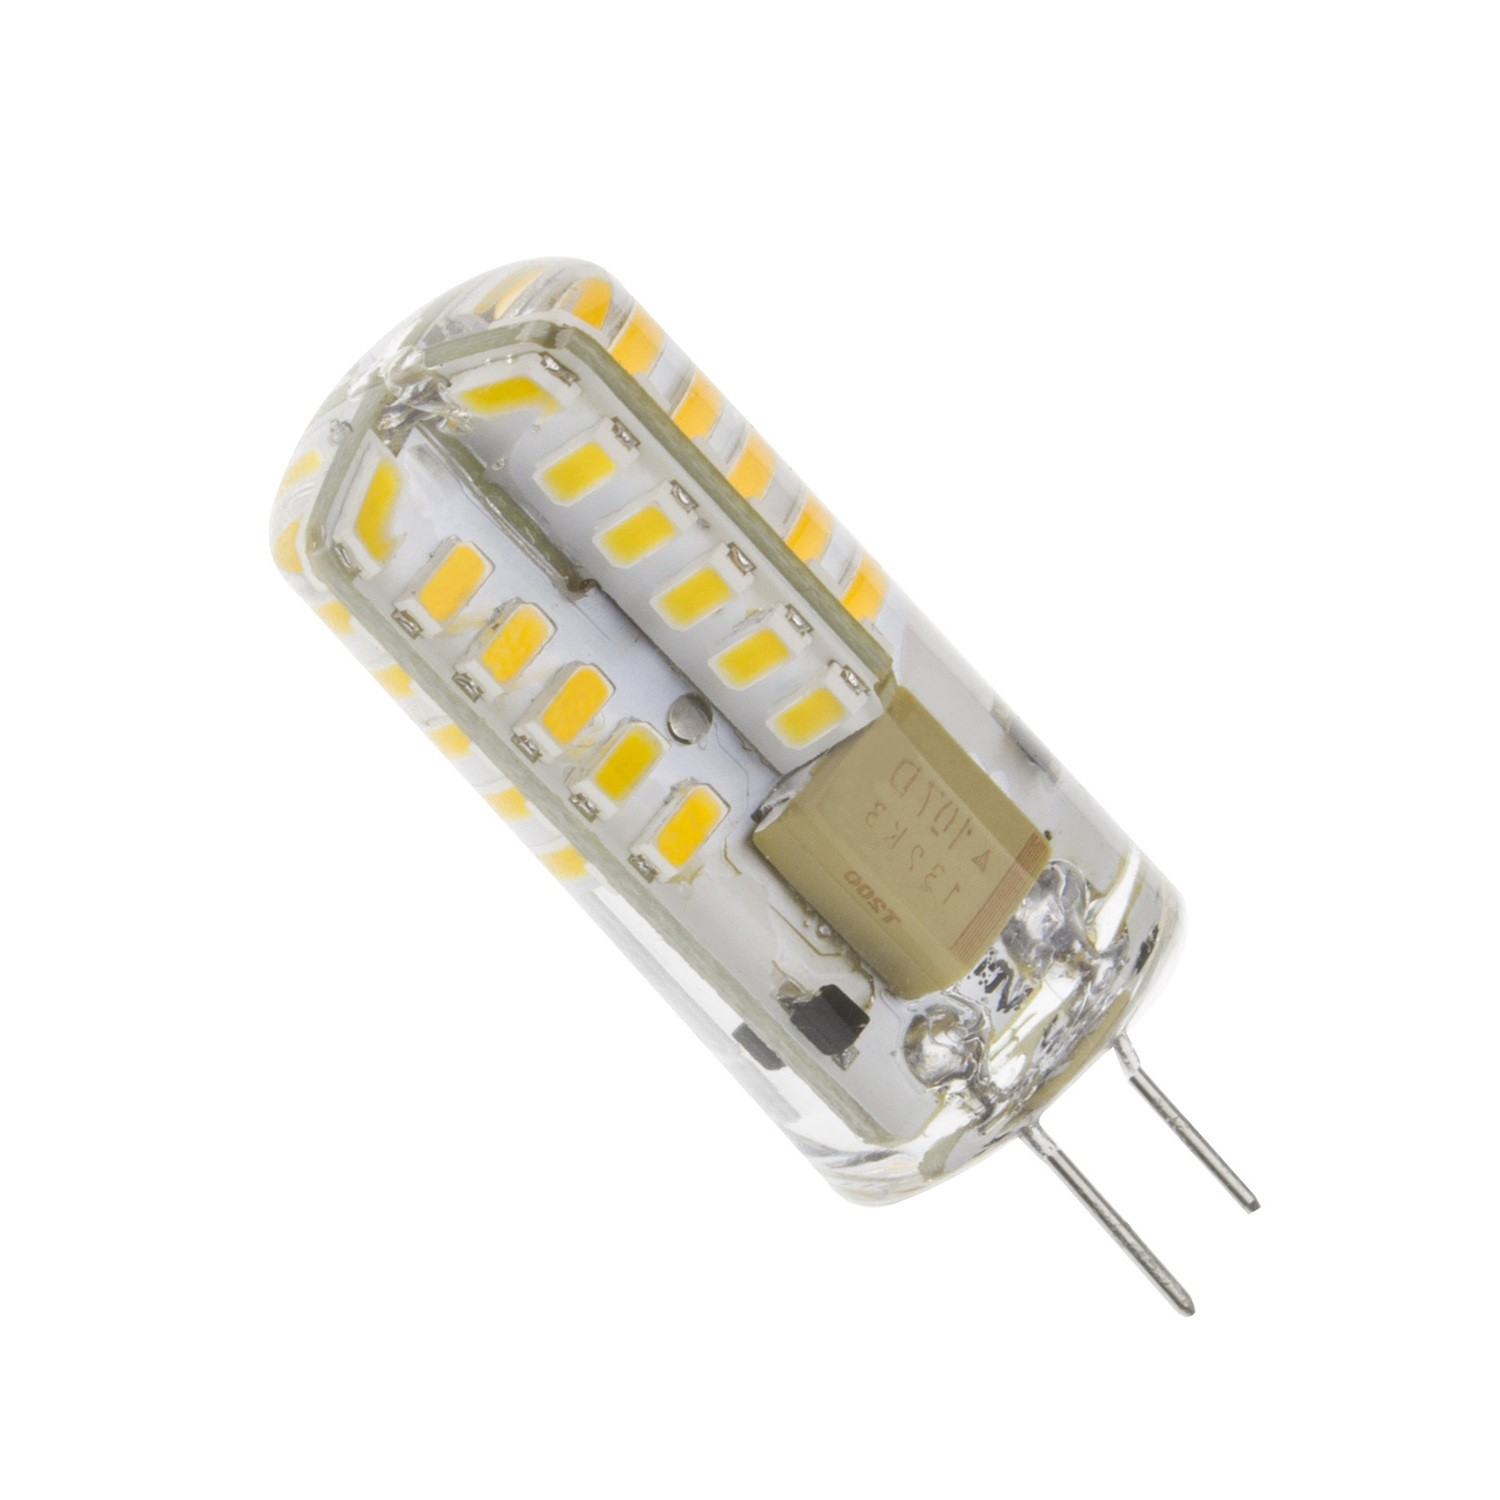 Lamparas Led 3w Lámpara Led G4 220v 3w Warelec